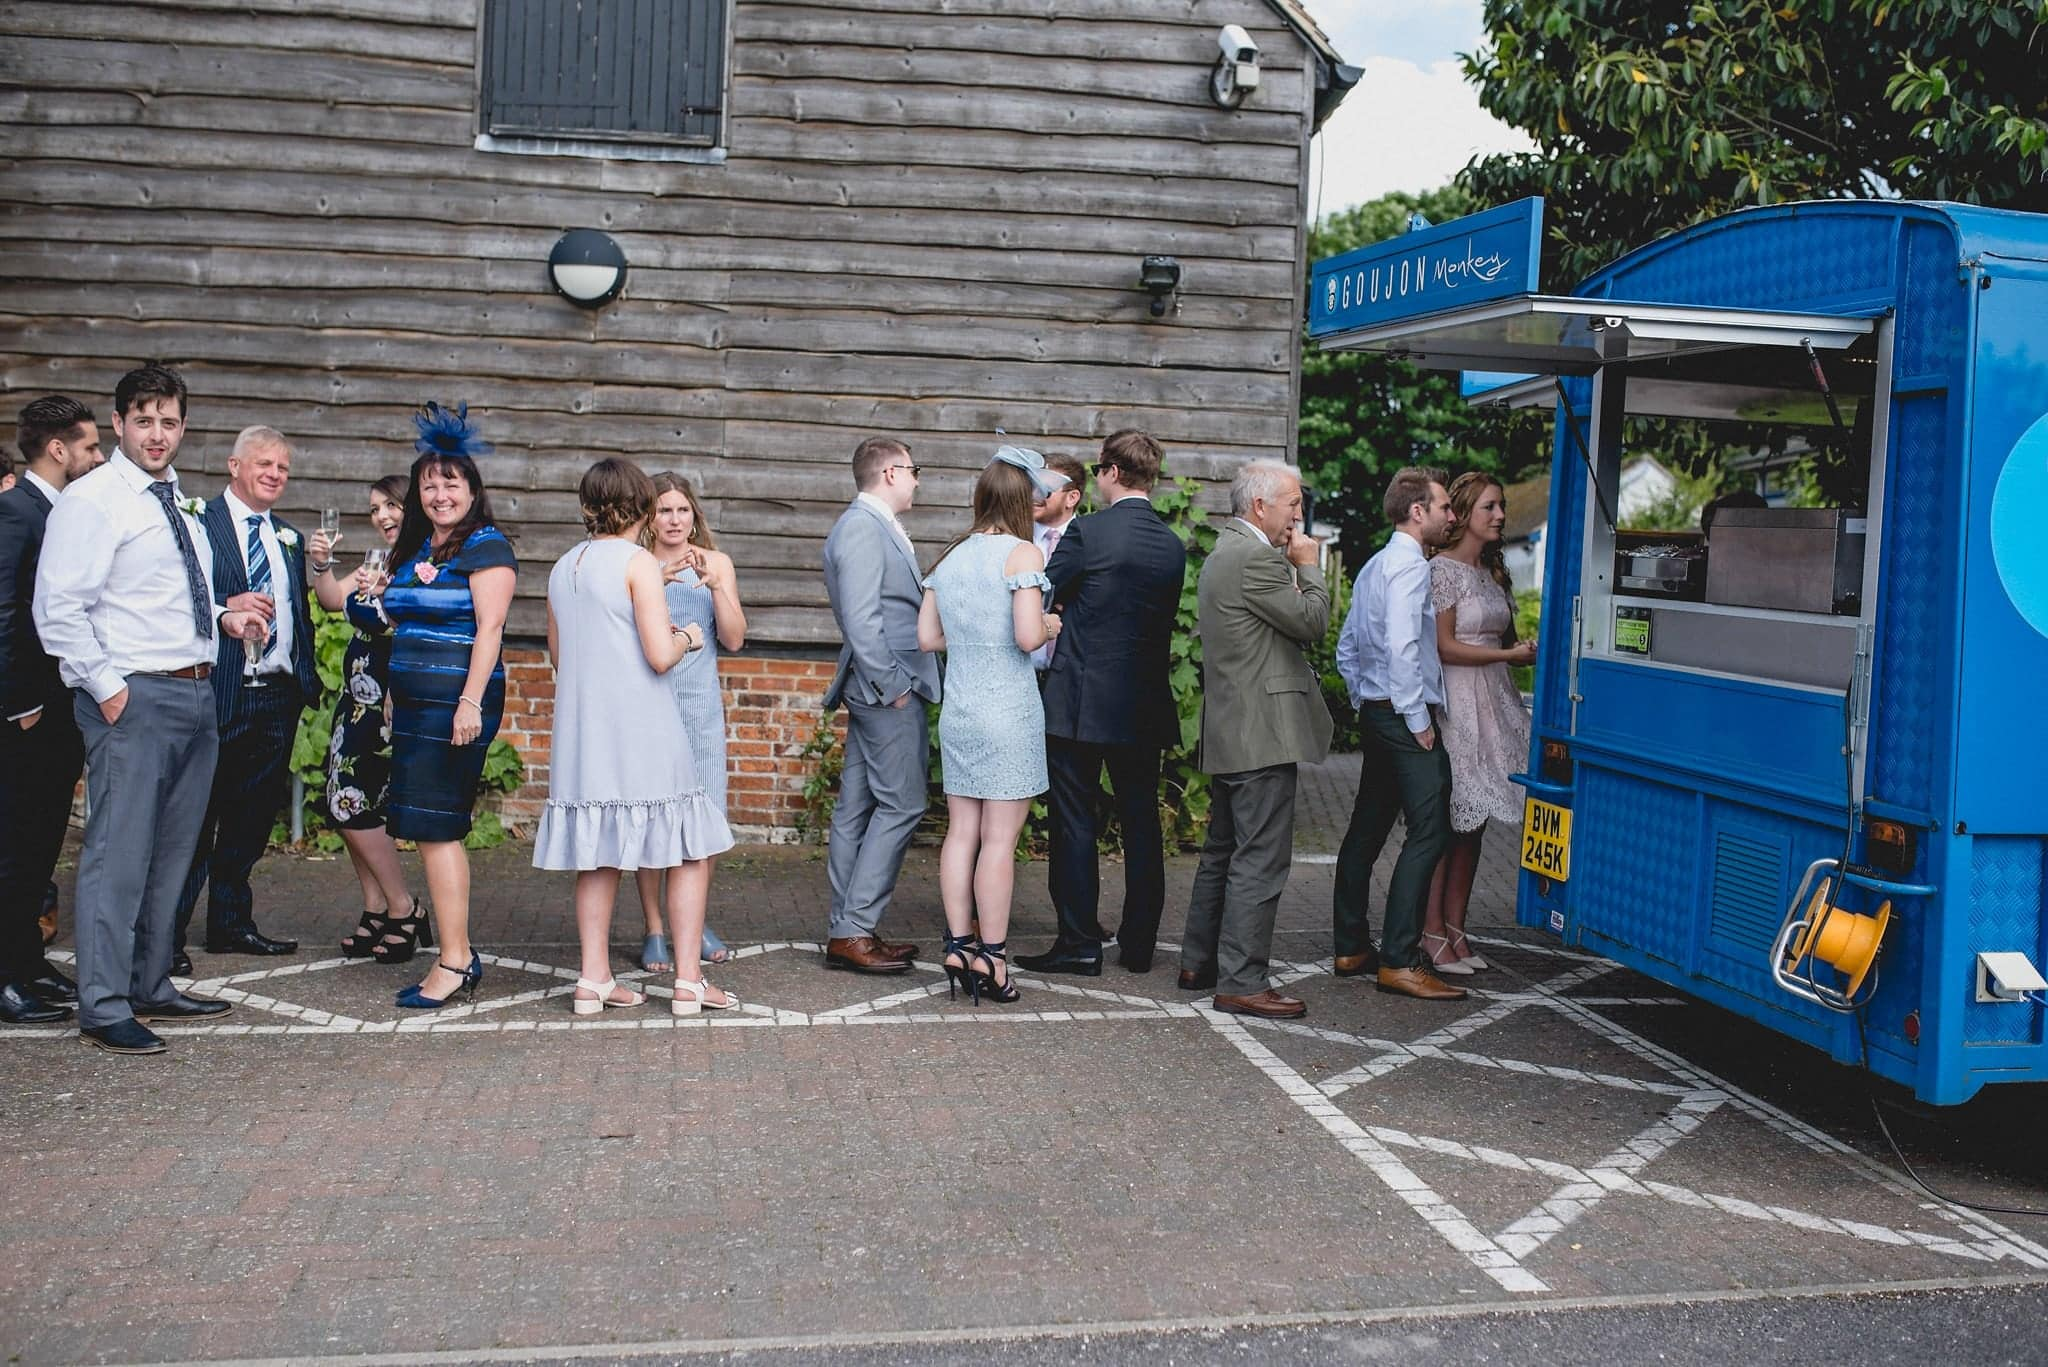 Queue at the fish and chip van during wedding reception